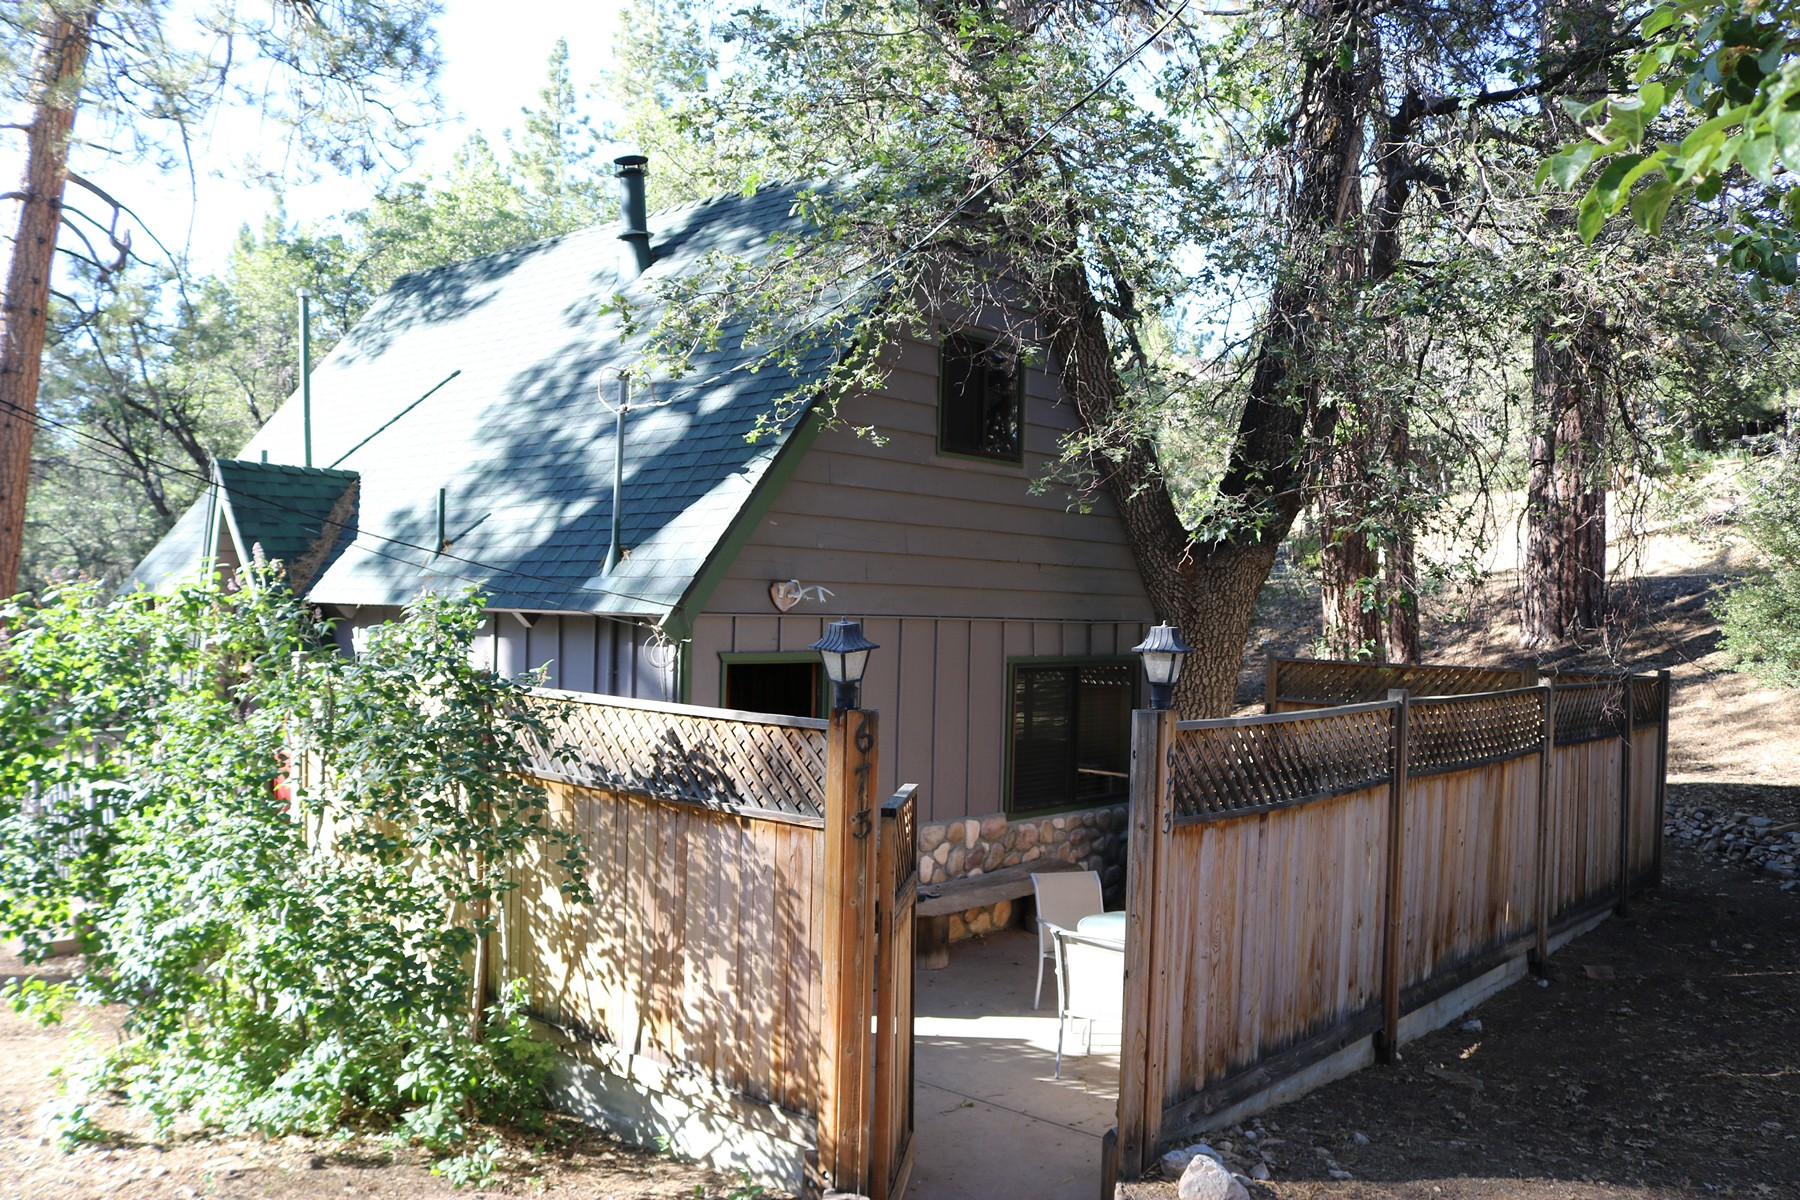 Single Family Homes for Sale at 673 Butte Avenue, Big Bear City, California, 92314 673 Butte Avenue Big Bear City, California 92314 United States